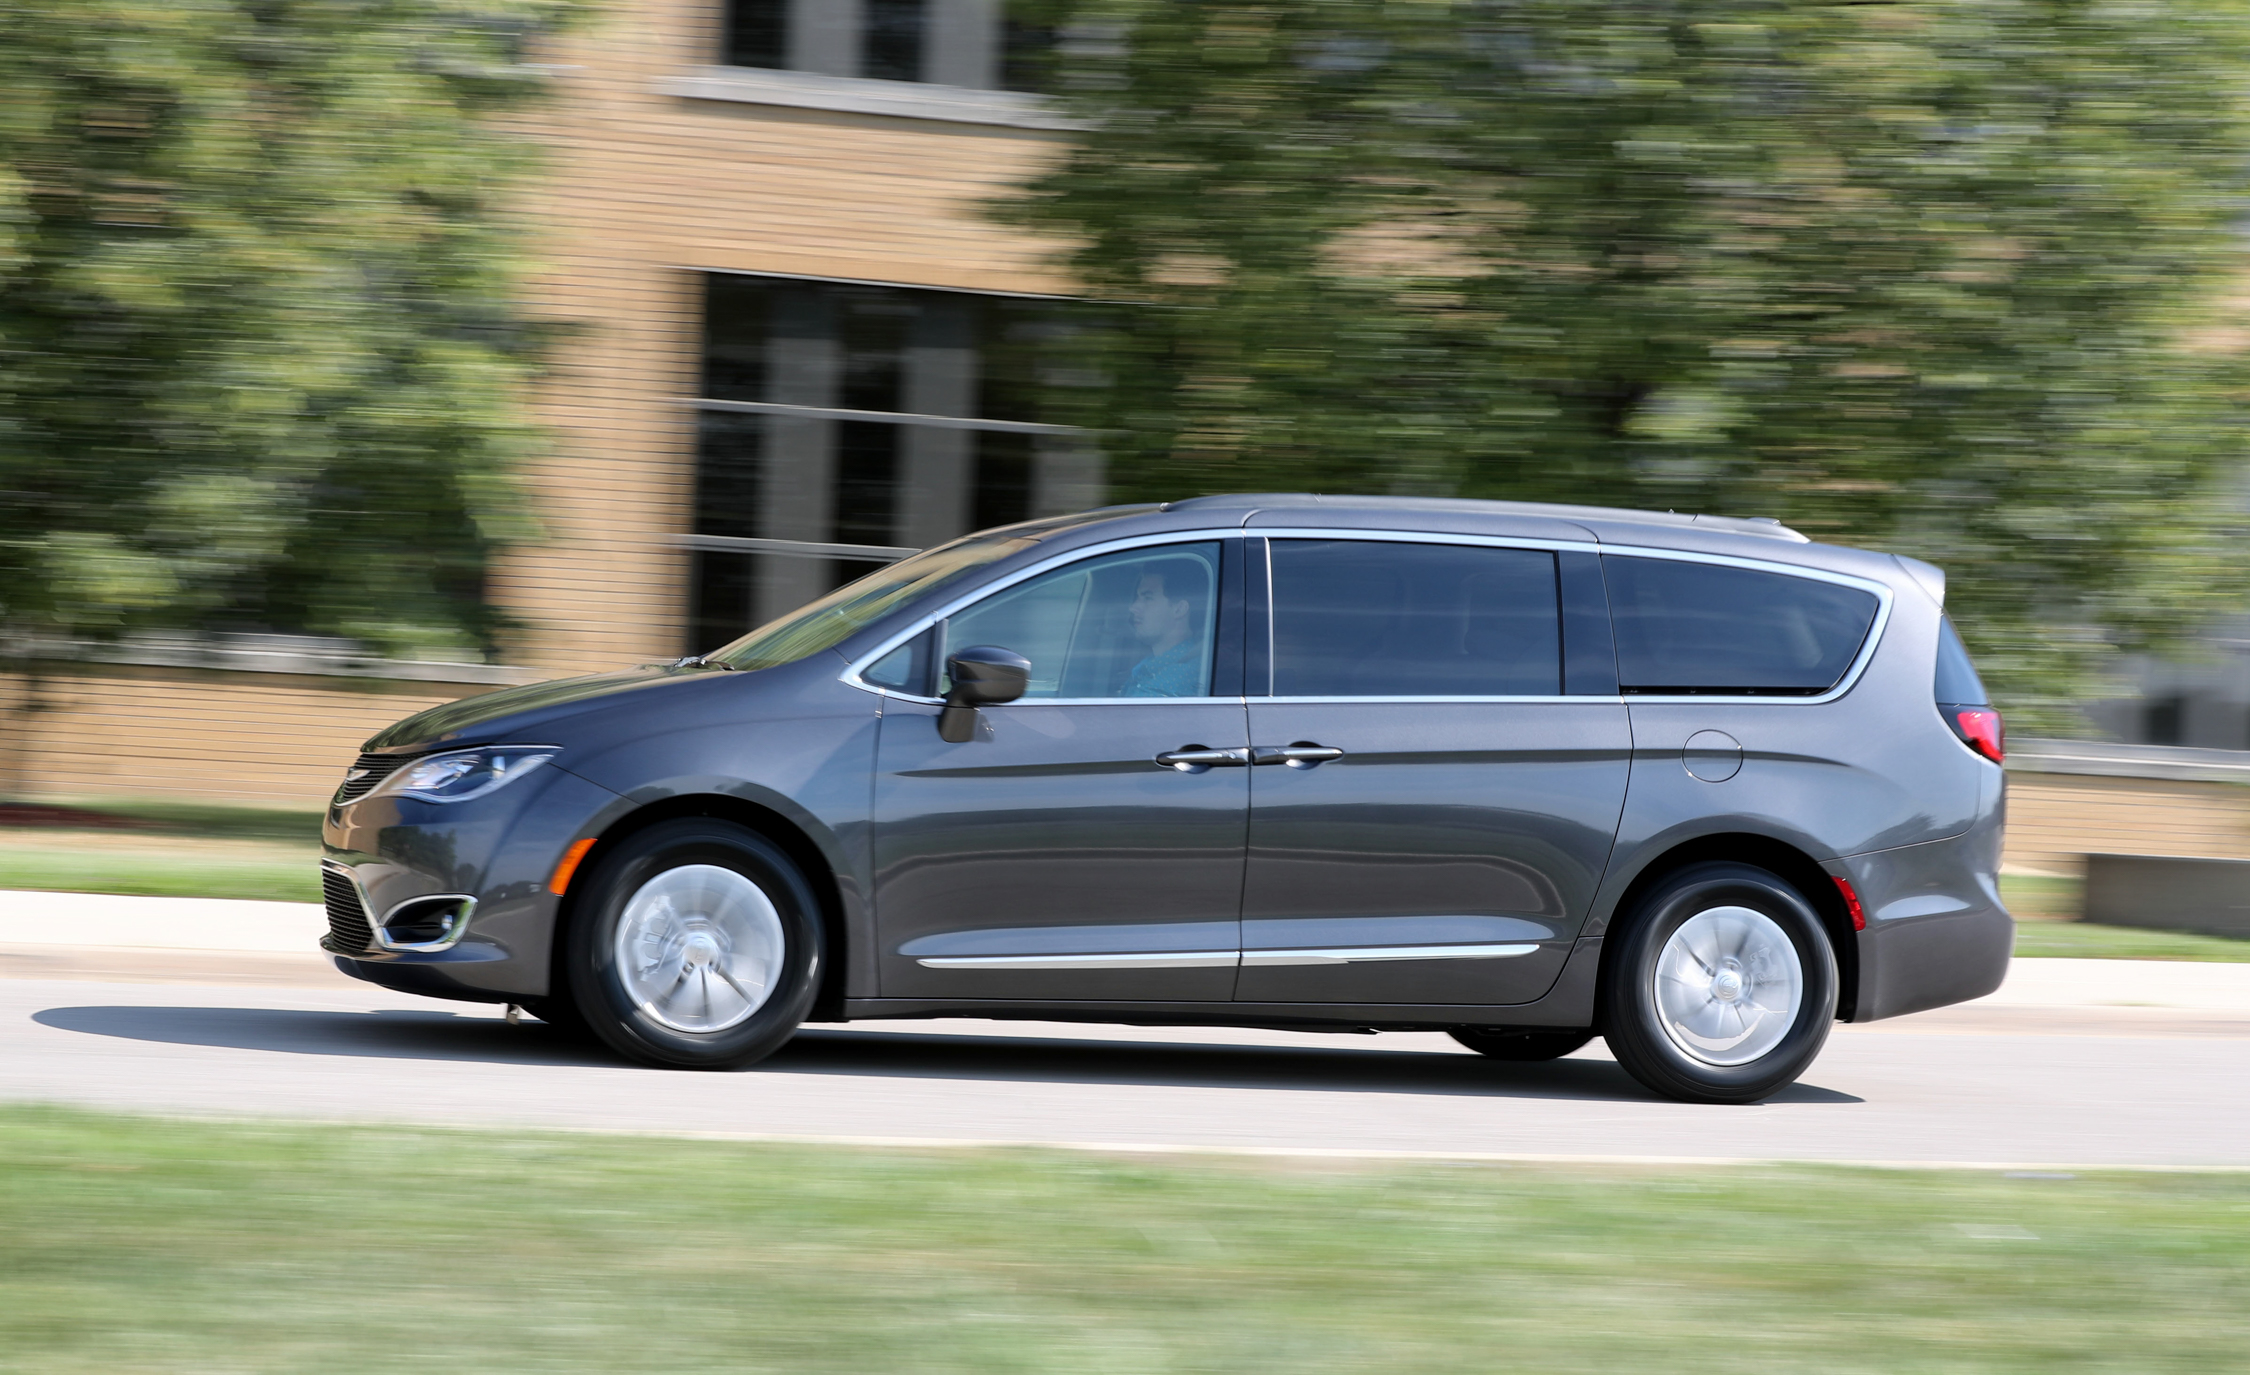 2017 Chrysler Pacifica Test Drive Front Side View (View 25 of 25)